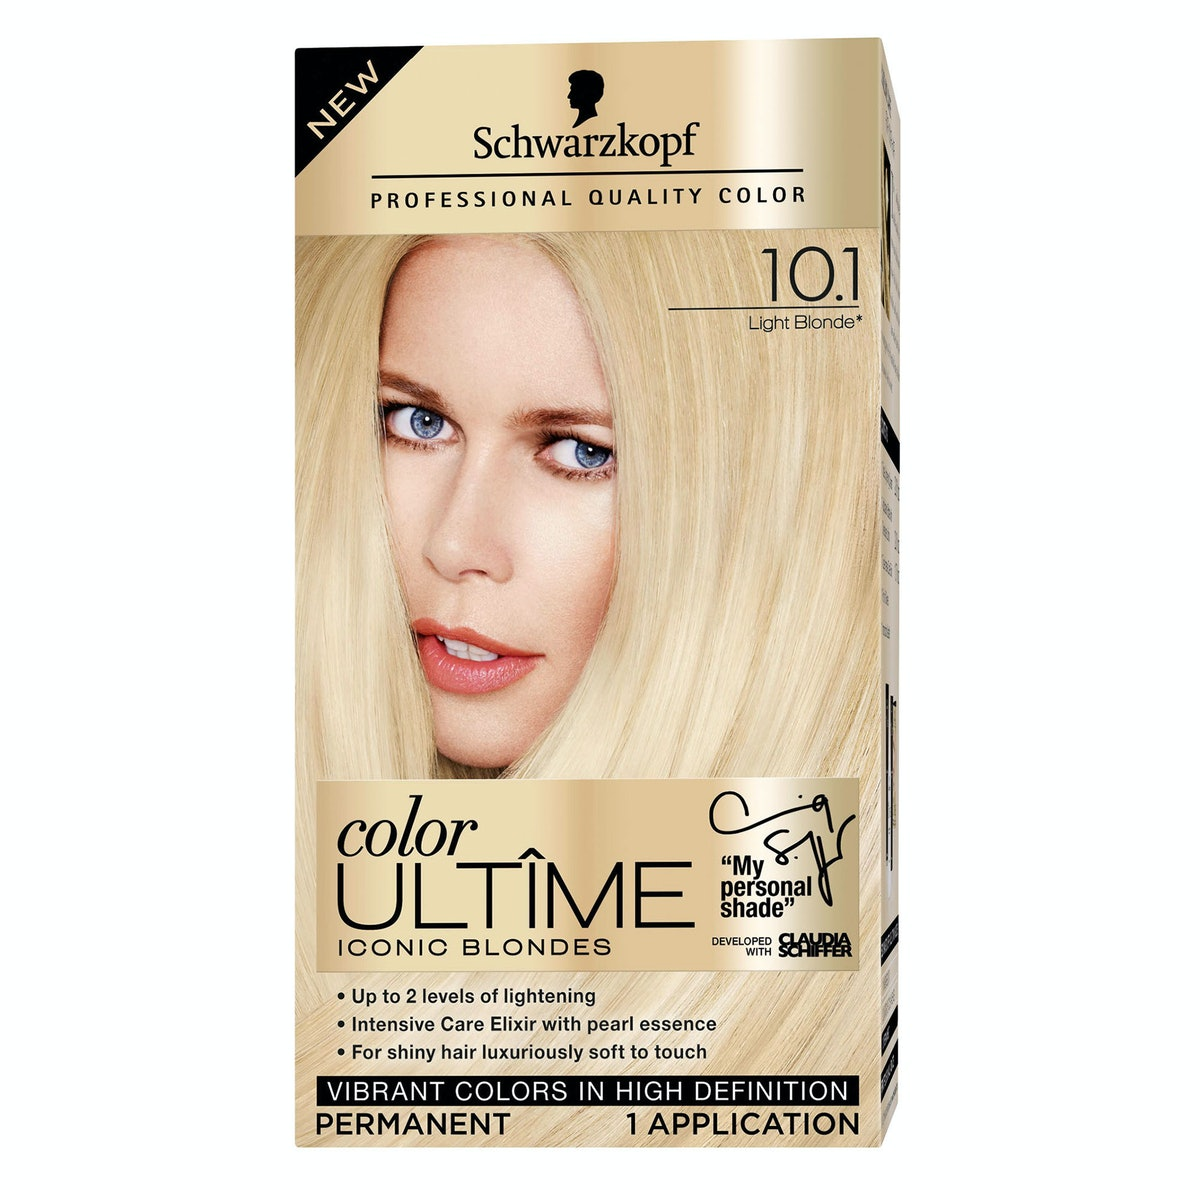 Claudia Schiffer's personal shade, available exclusively at Wal-Mart